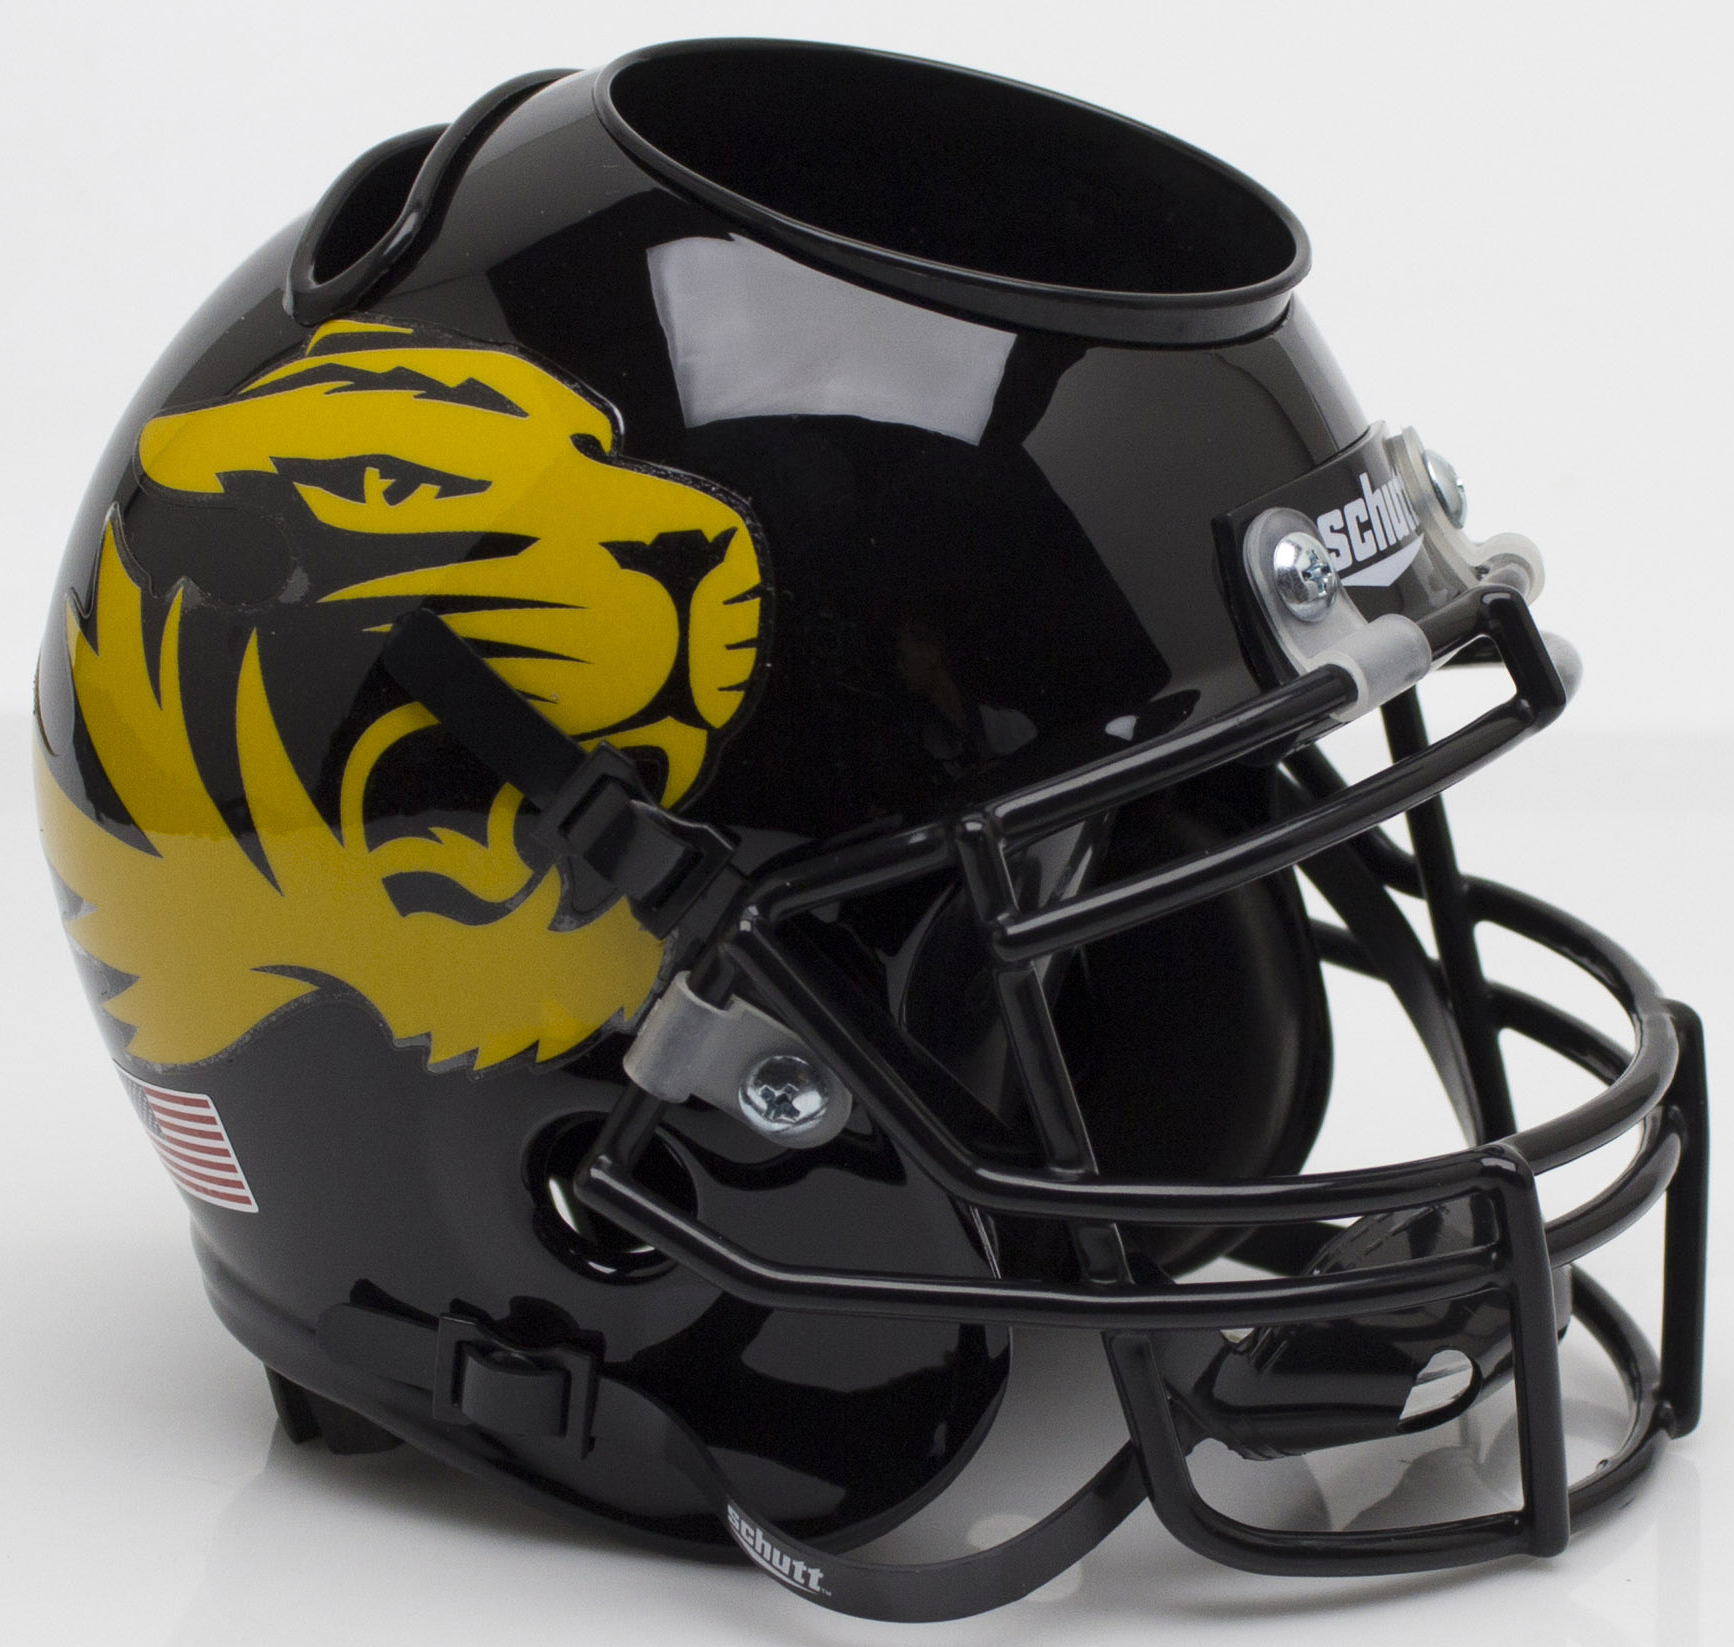 Missouri Tigers Miniature Football Helmet Desk Caddy <B>Large Tiger Alt 4</B>